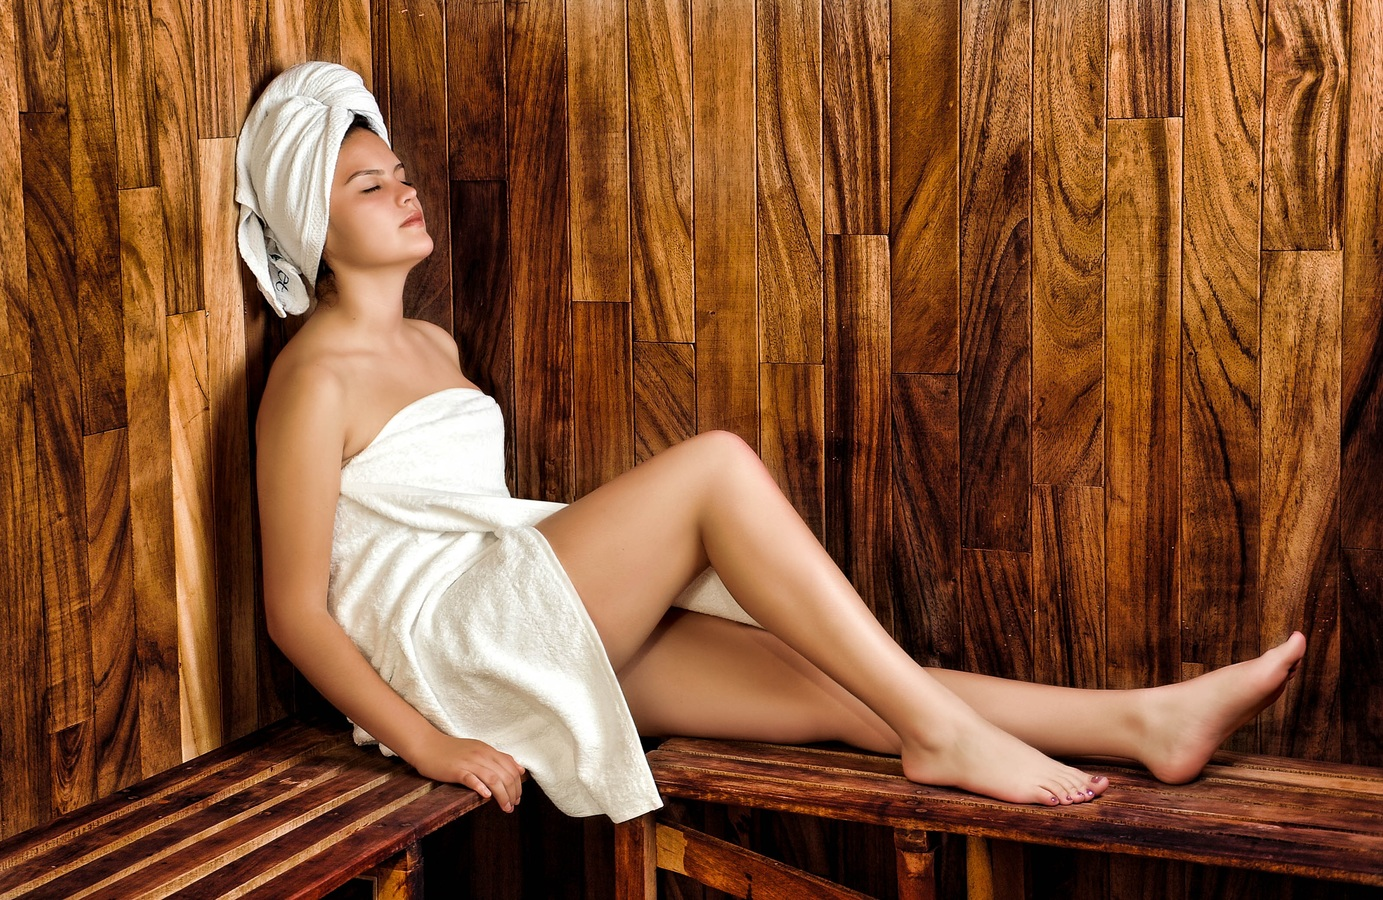 a woman in a sauna room